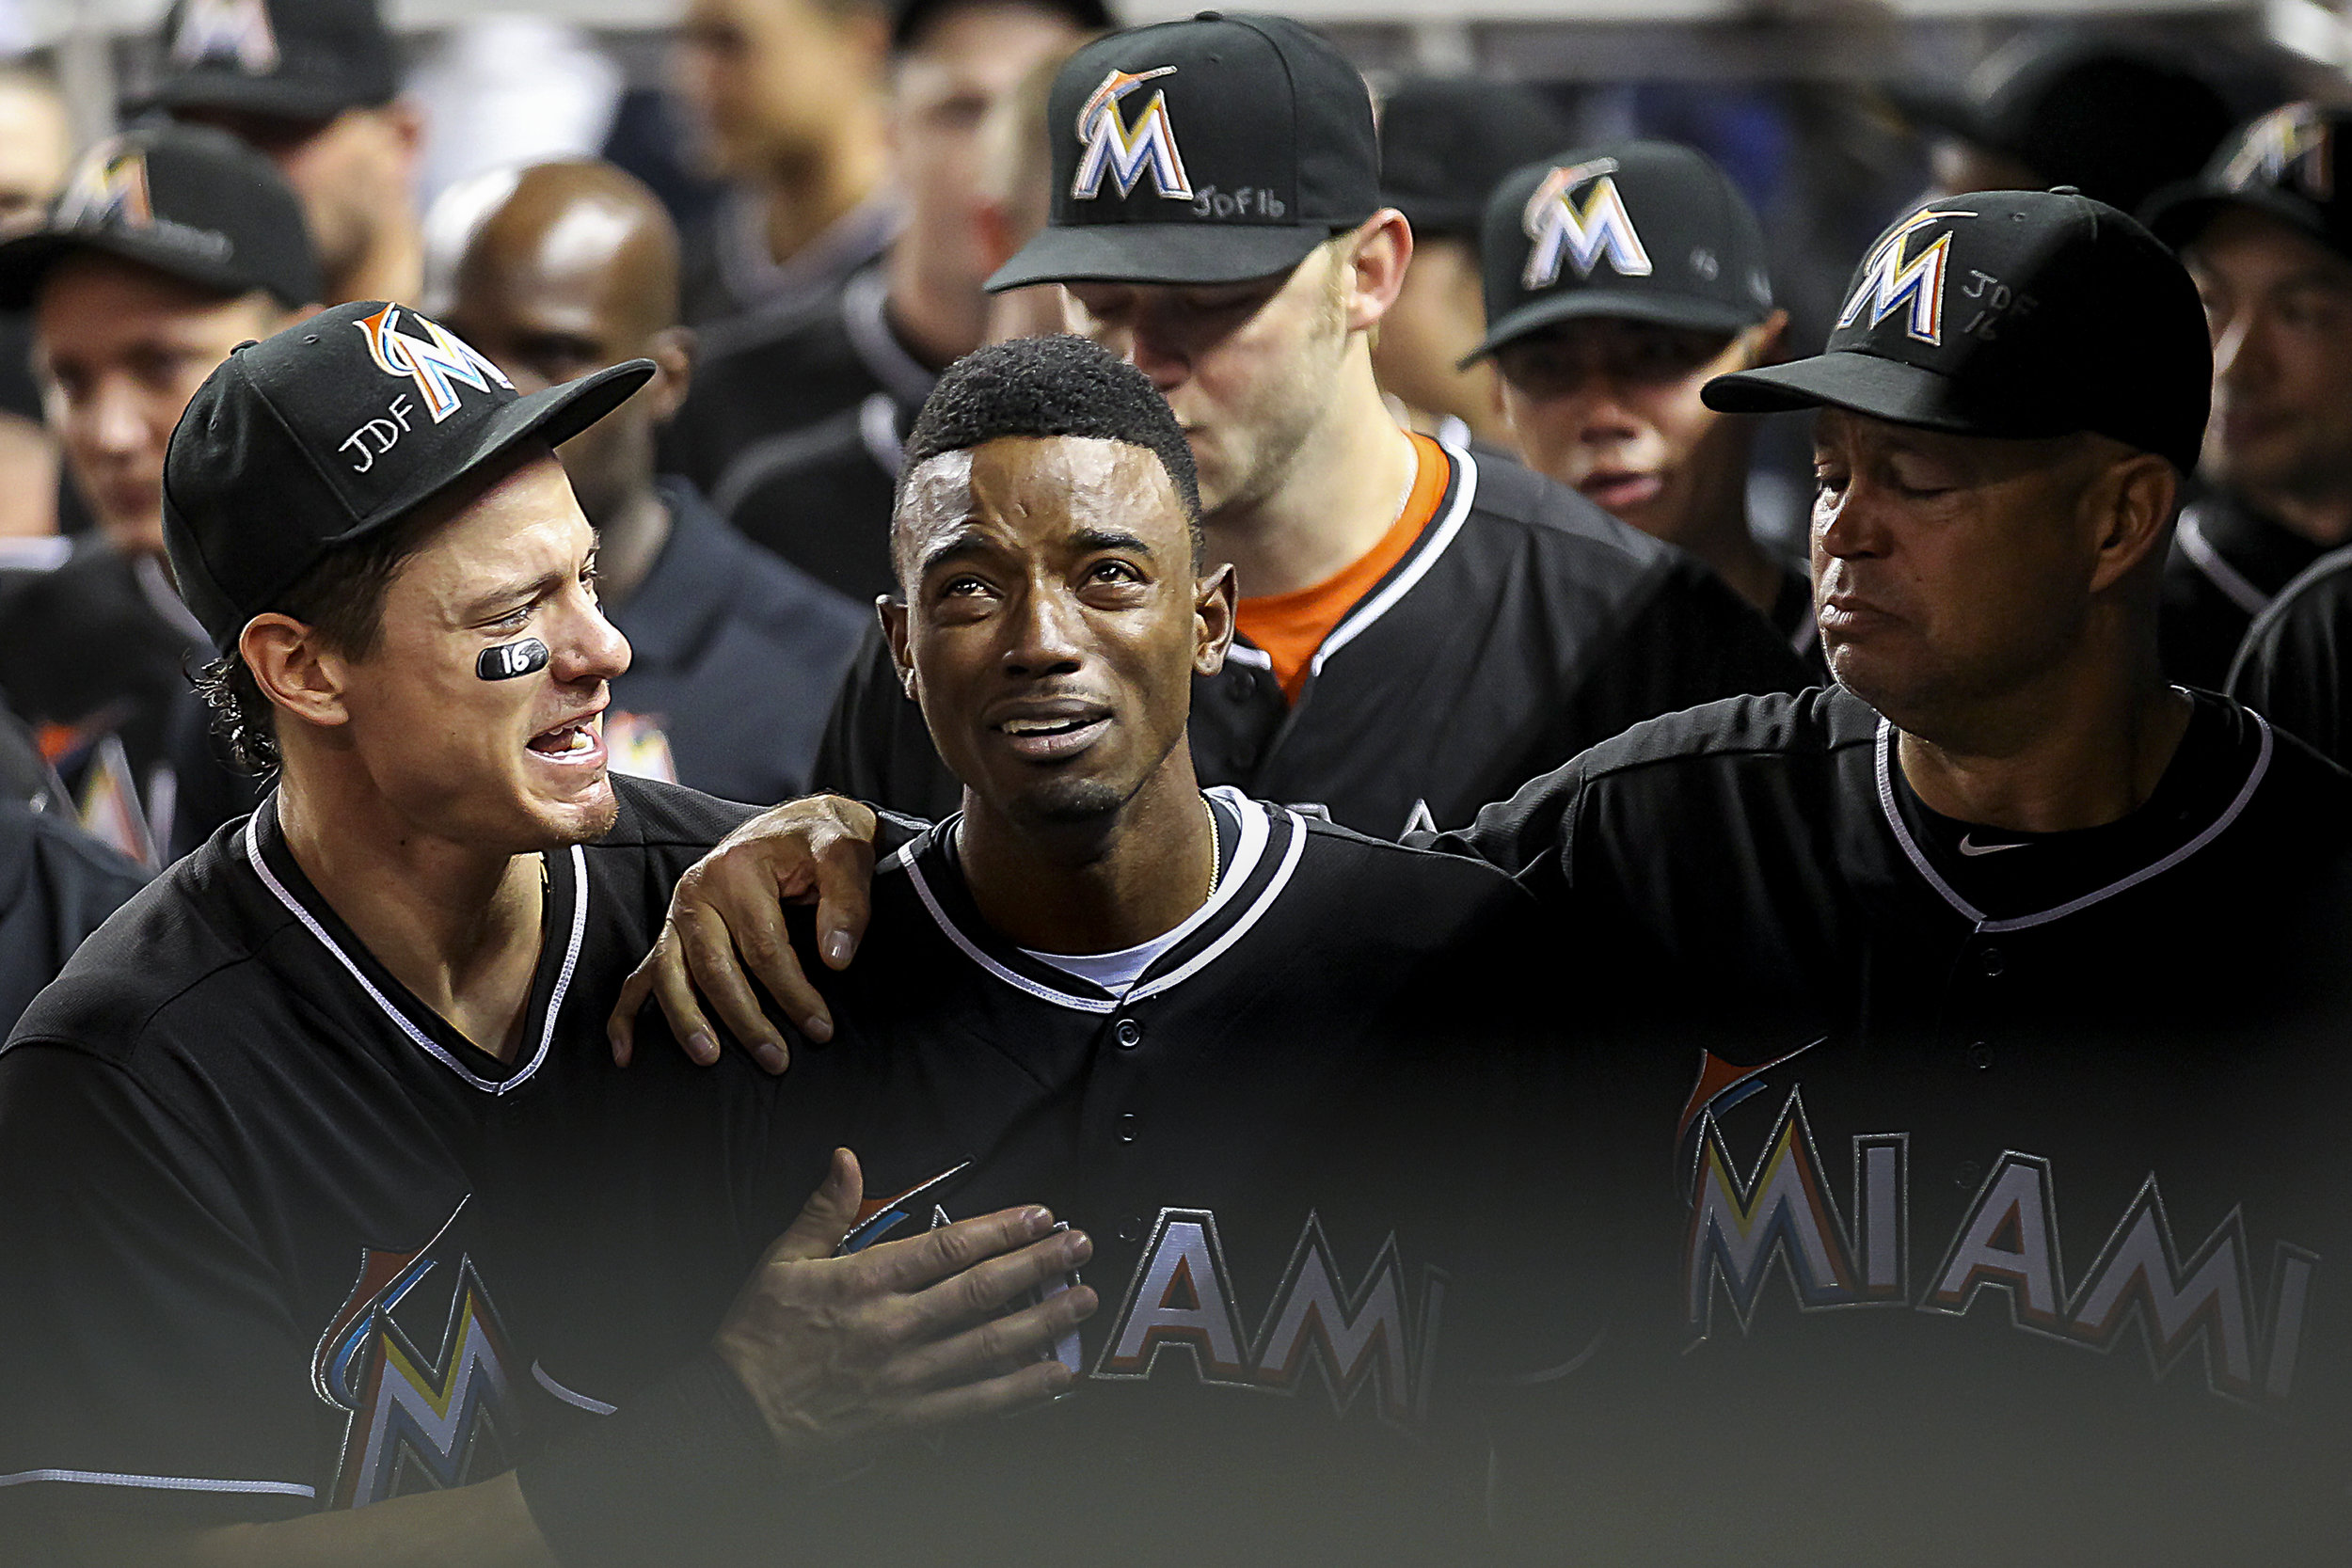 Miami Marlins' Dee Gordon (9), center, gets consoled by Derek Dietrich (32), left, after hitting a home run during the first inning of a baseball game against the New York Mets at Marlins Park in Little Havana on Mon., Sept. 26, 2016. This is the first game the team played after the death of their pitcher Jose Fernandez.